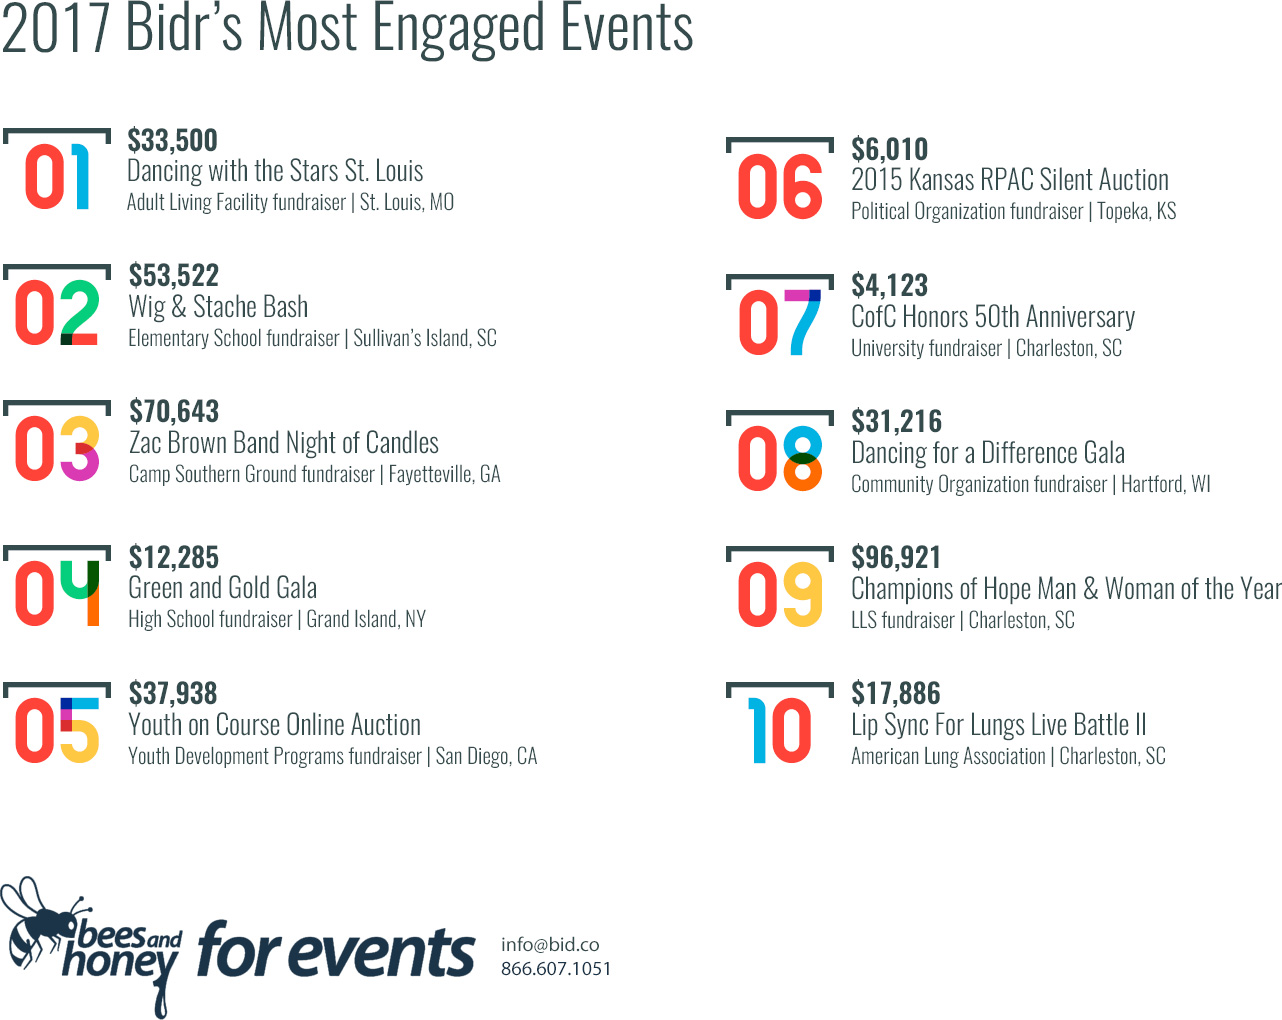 2017 Most Engaged Fundraising Events...Bidr's not just for big events anymore